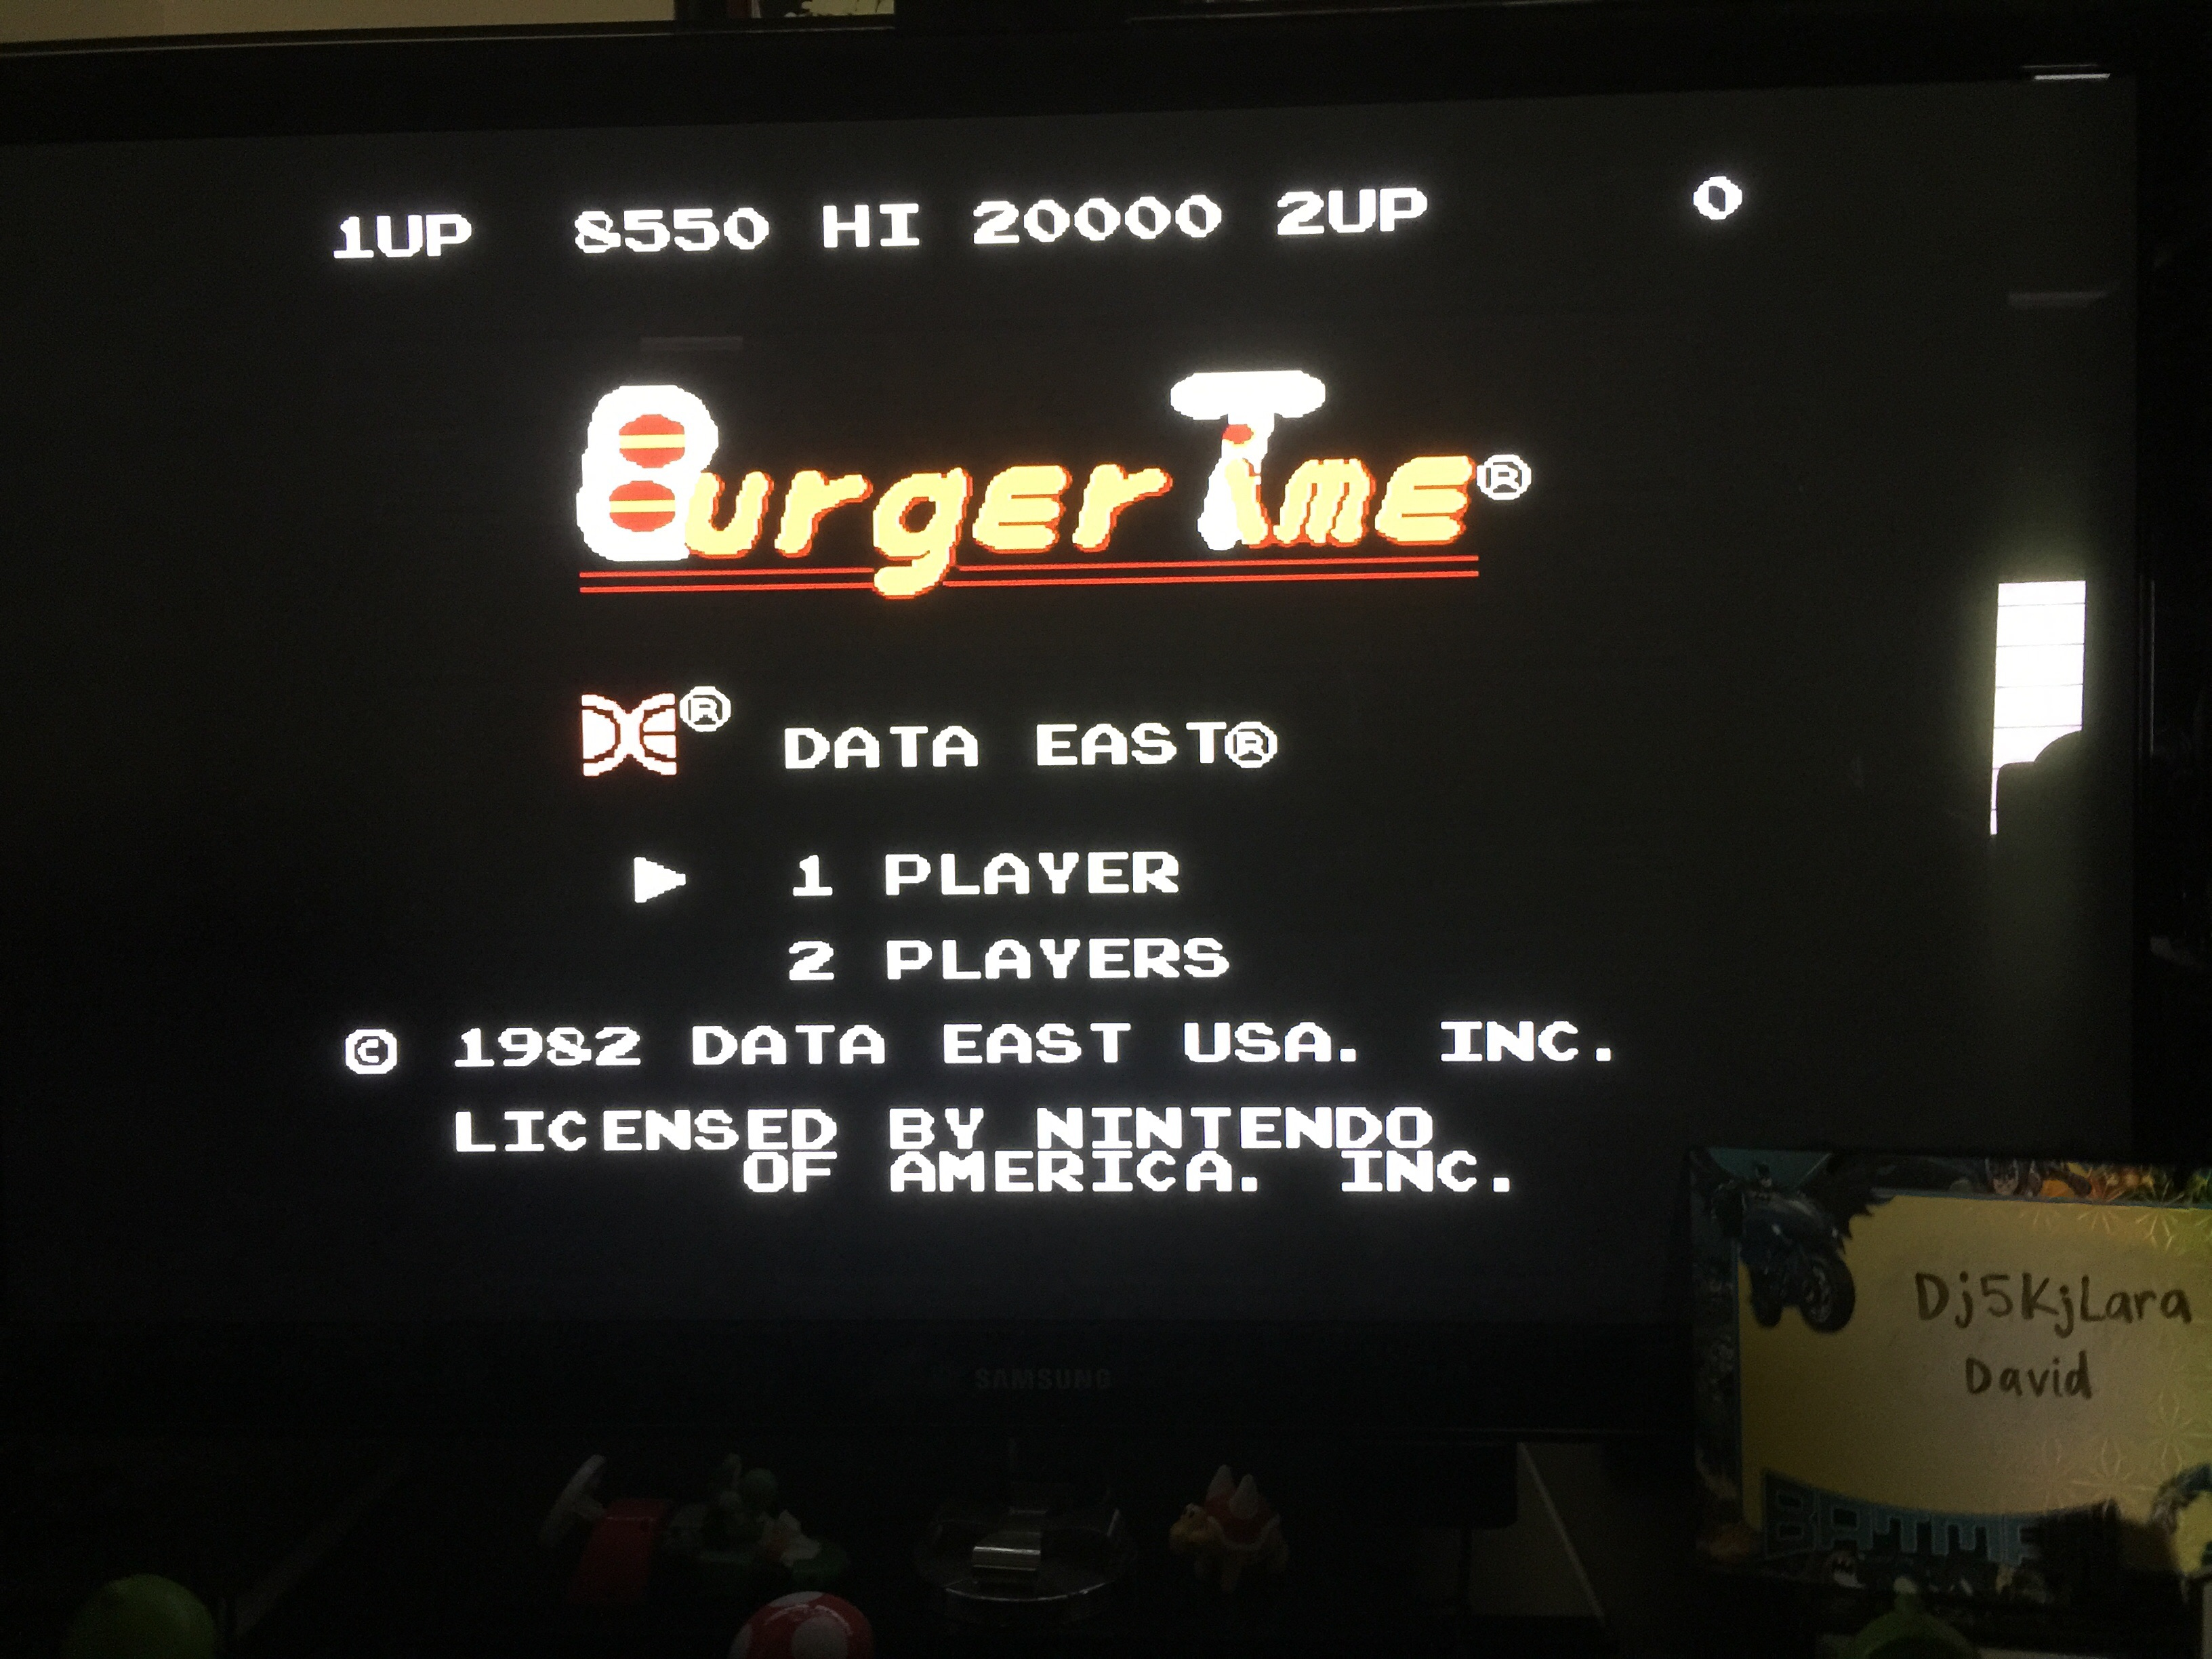 dj5kjlara: BurgerTime (NES/Famicom Emulated) 8,550 points on 2014-10-25 14:59:38